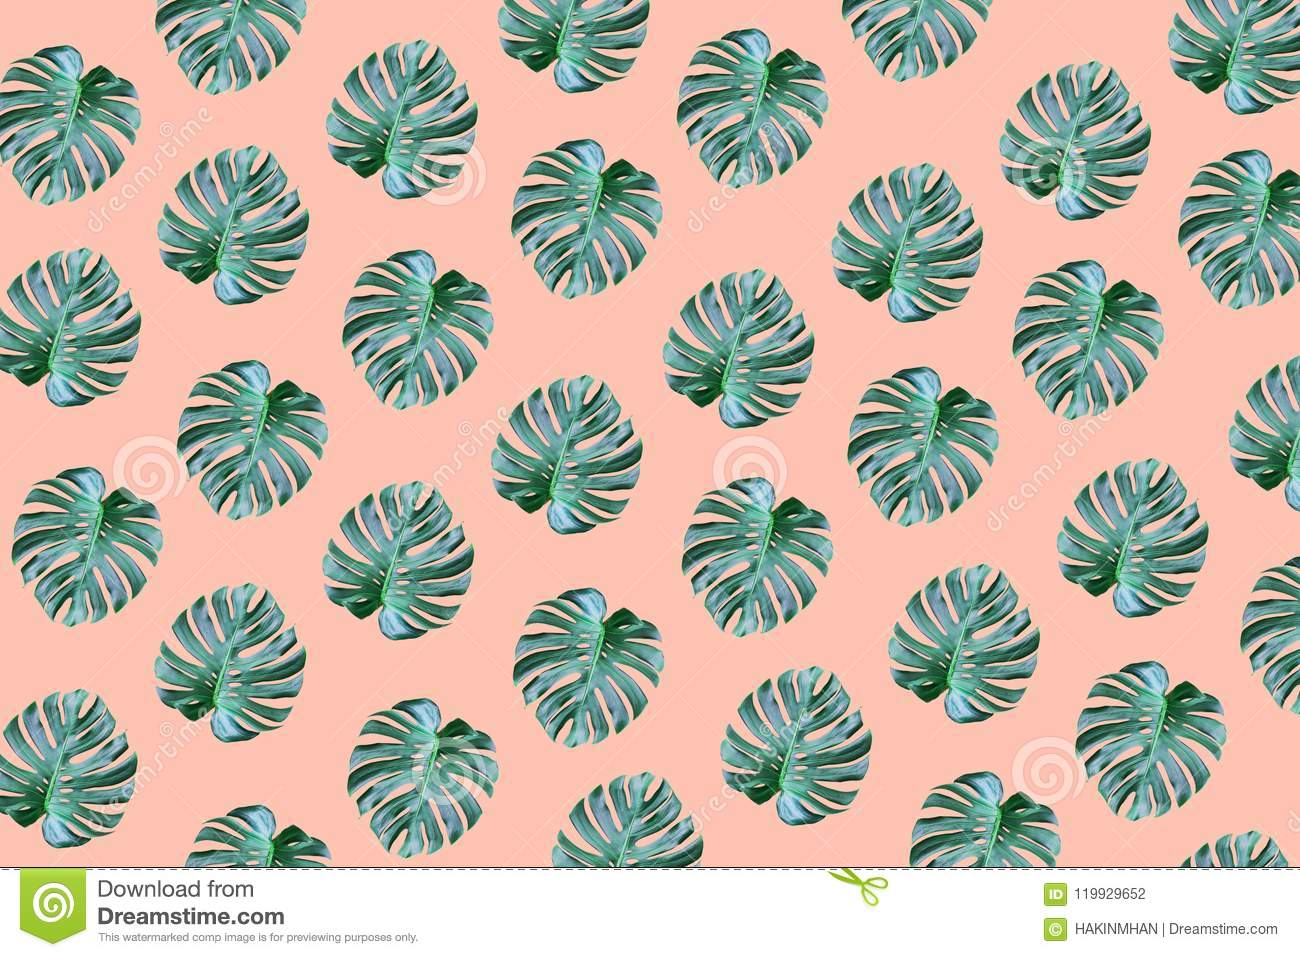 Real tropical monstera leaves pattern design on pastel color